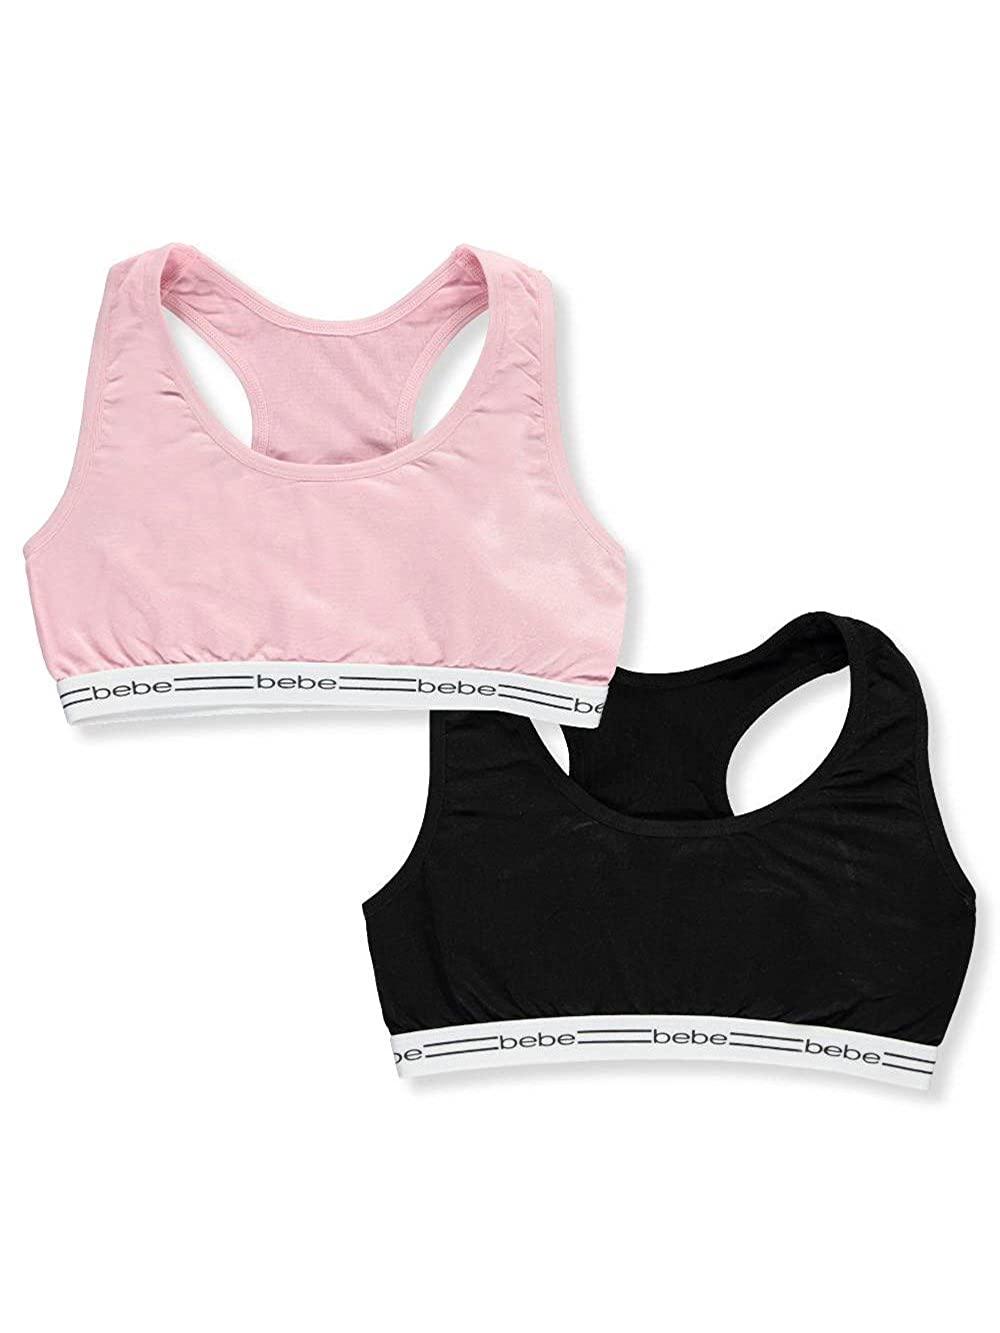 bebe Girls' 2-Pack Seamless Sports Bras